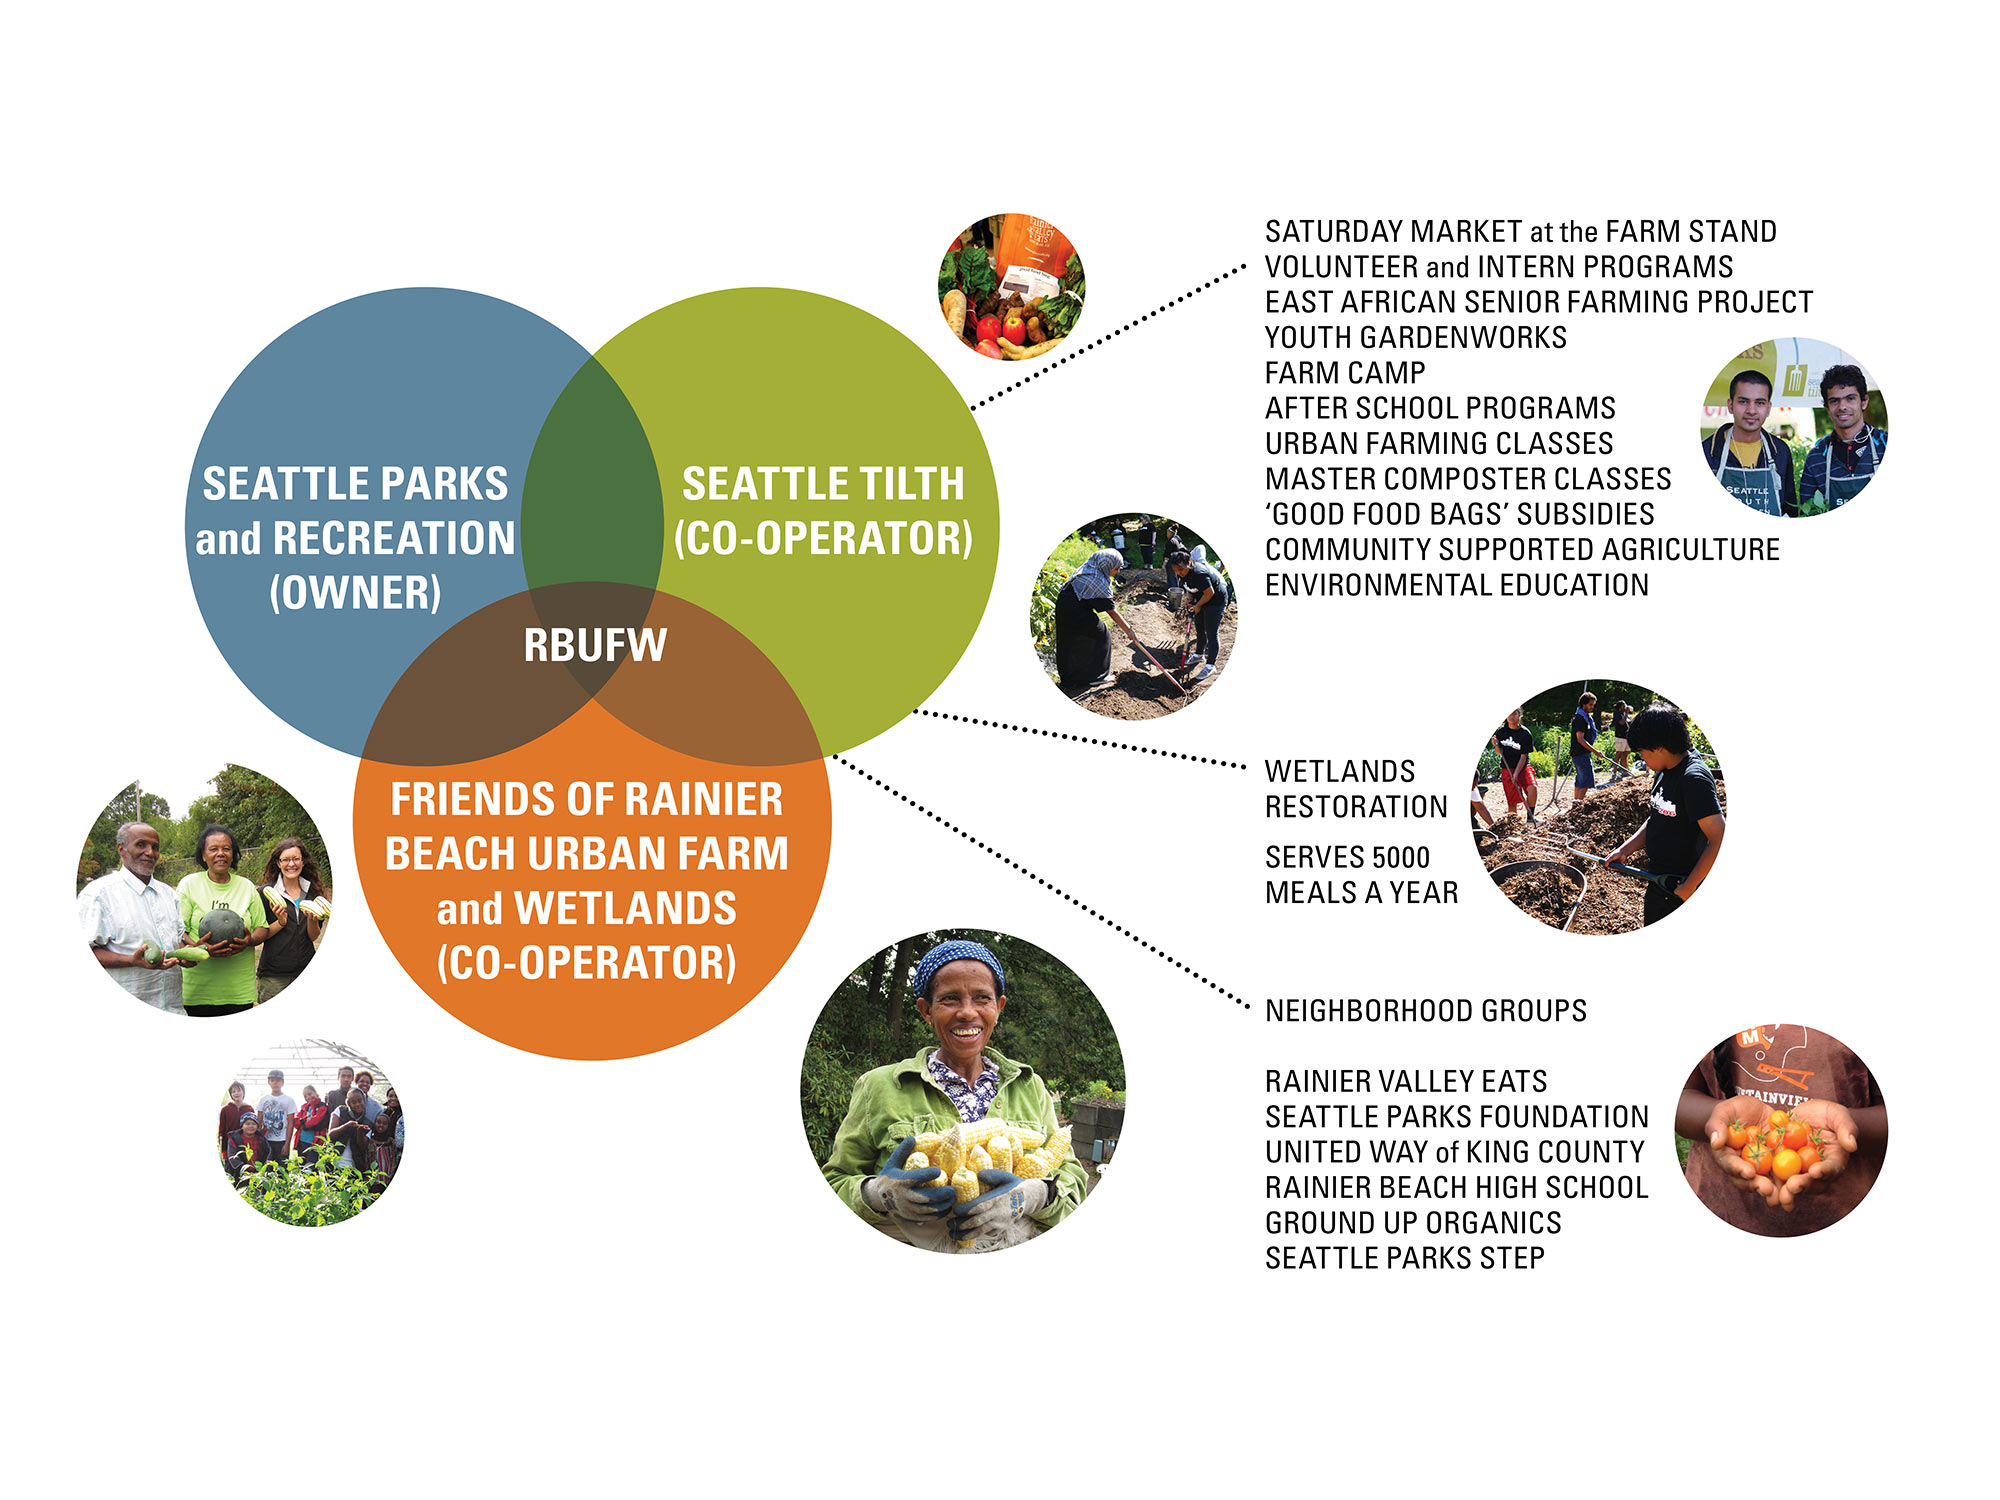 The RBUFW Classroom Building is part of a larger project by the Seattle Tilth Alliance and the Seattle Parks and Recreation Department to transform a marshy, lakefront parcel into a regional center for the promotion and development of urban agriculture.